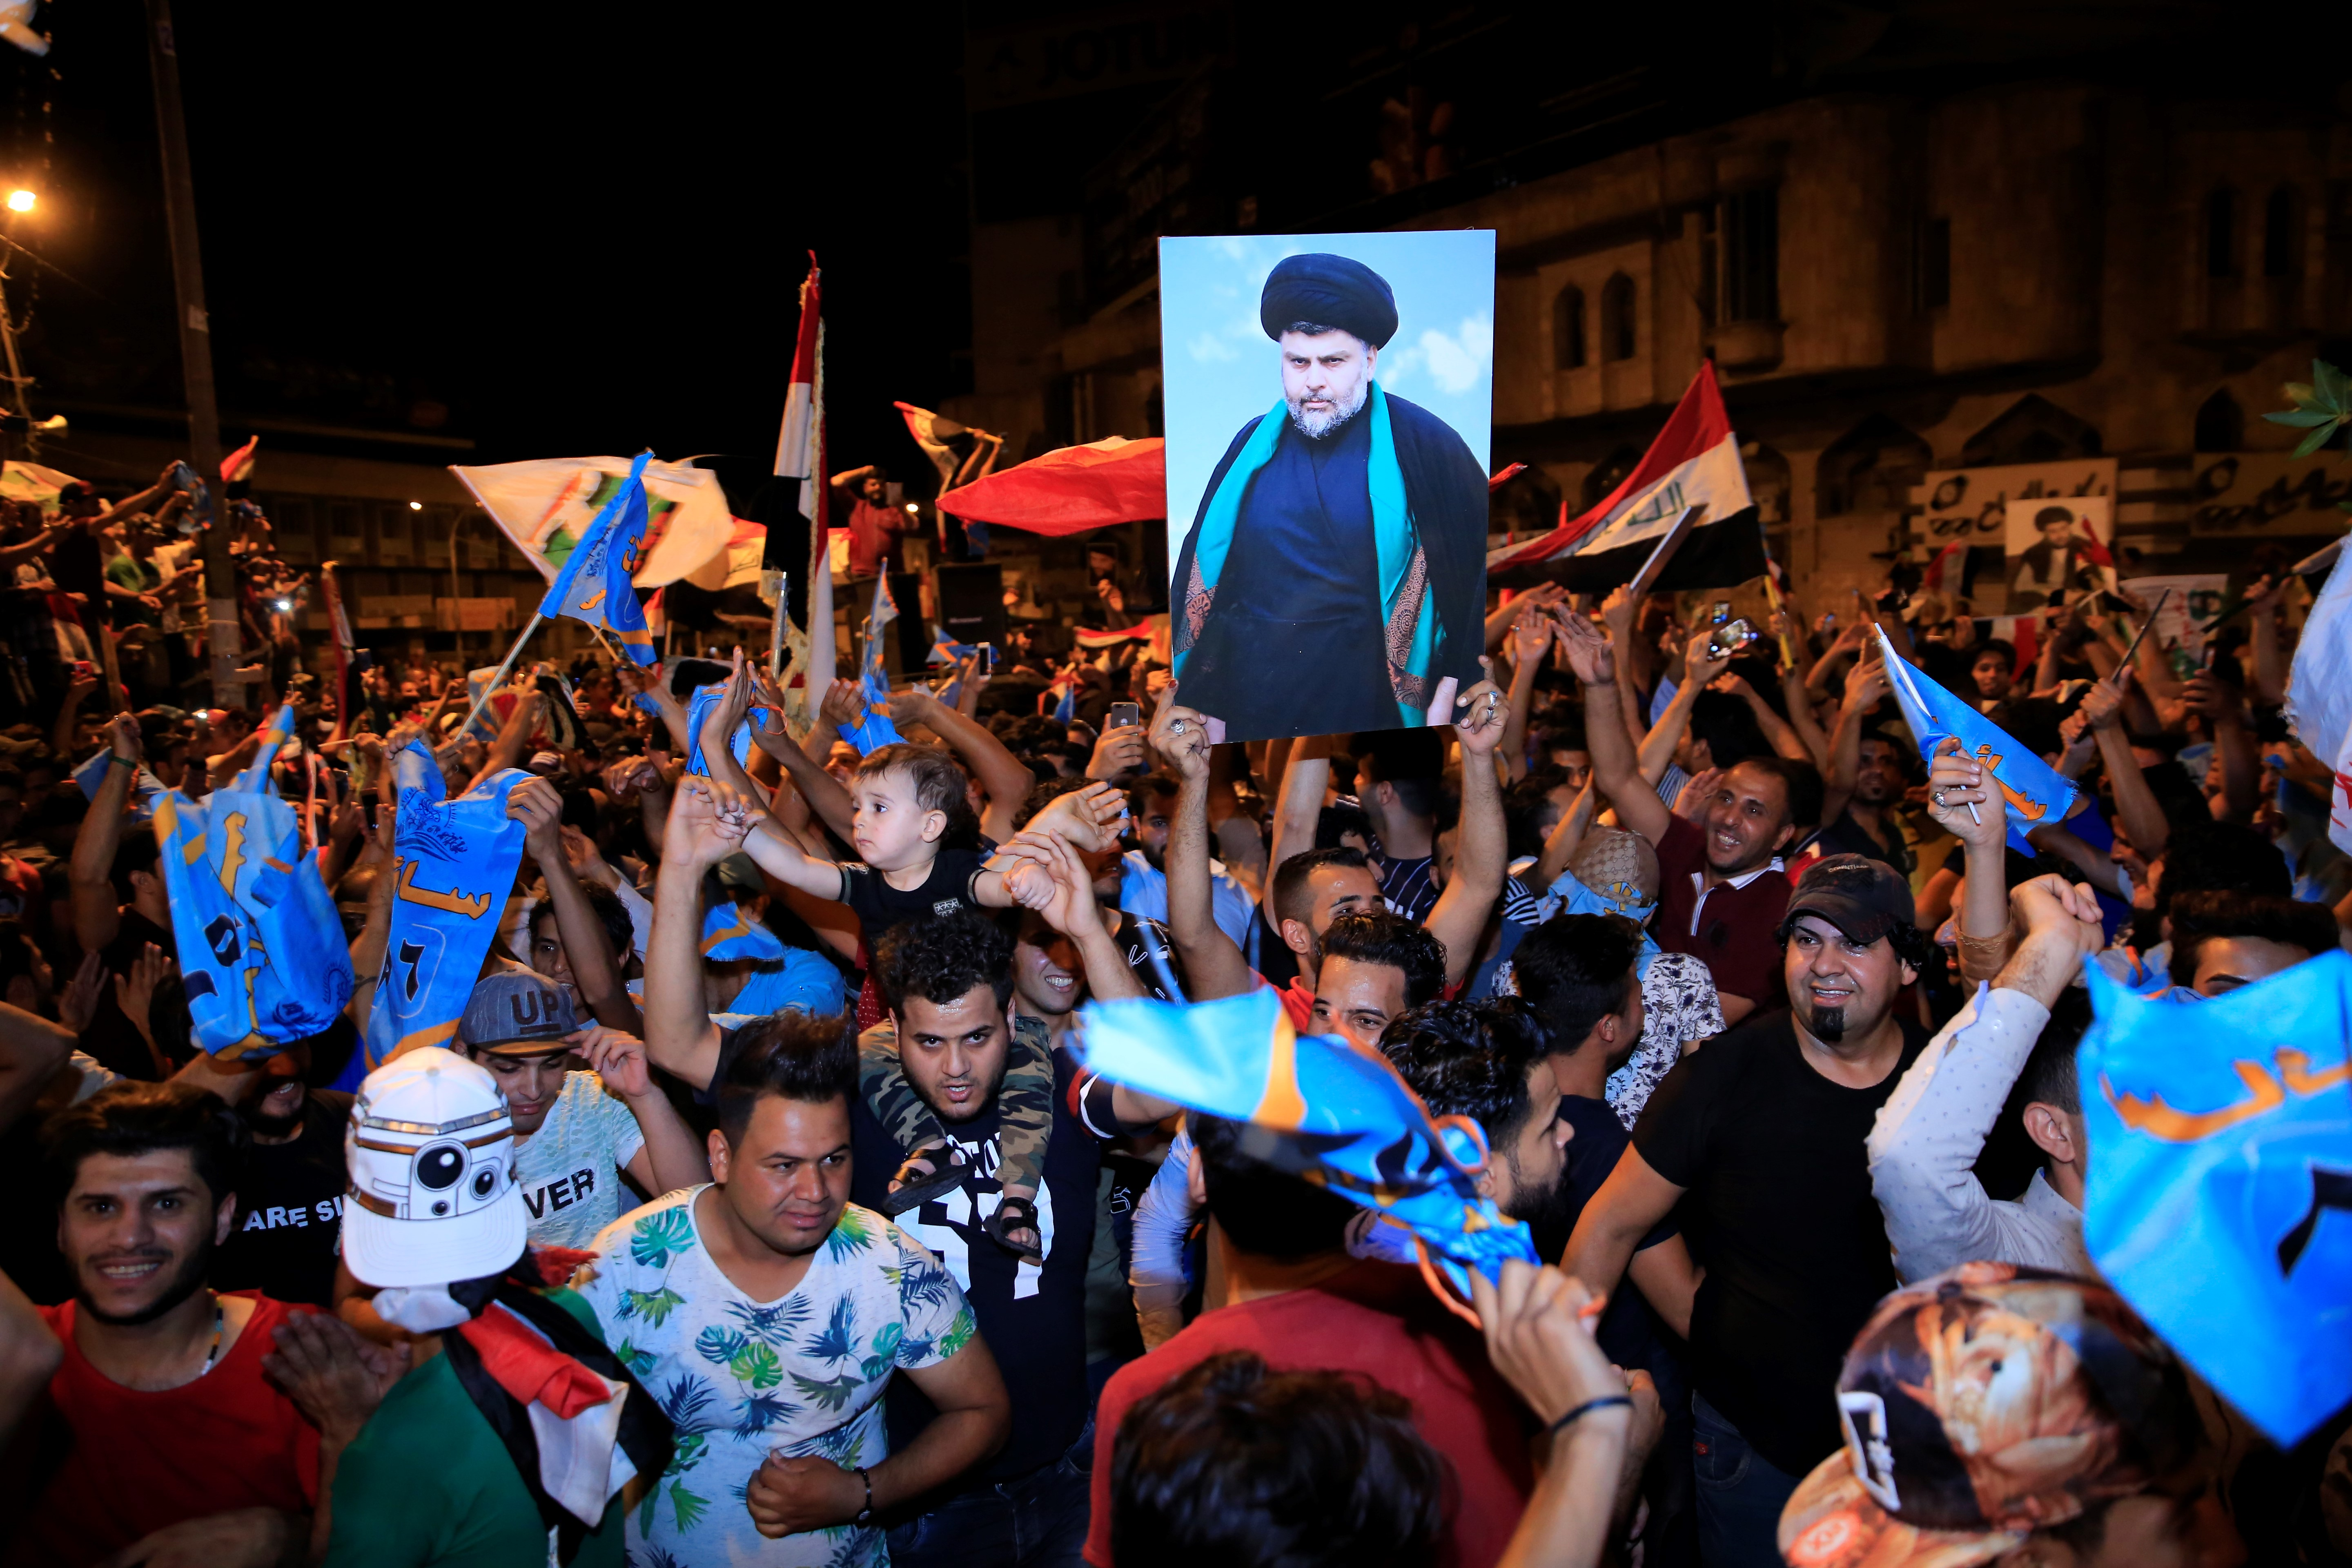 Supporters of Iraqi Shiite cleric Muqtada al-Sadr celebrate the results of the parliamentary election at the Tahrir Square, Baghdad, Iraq, on May 13, 2018.